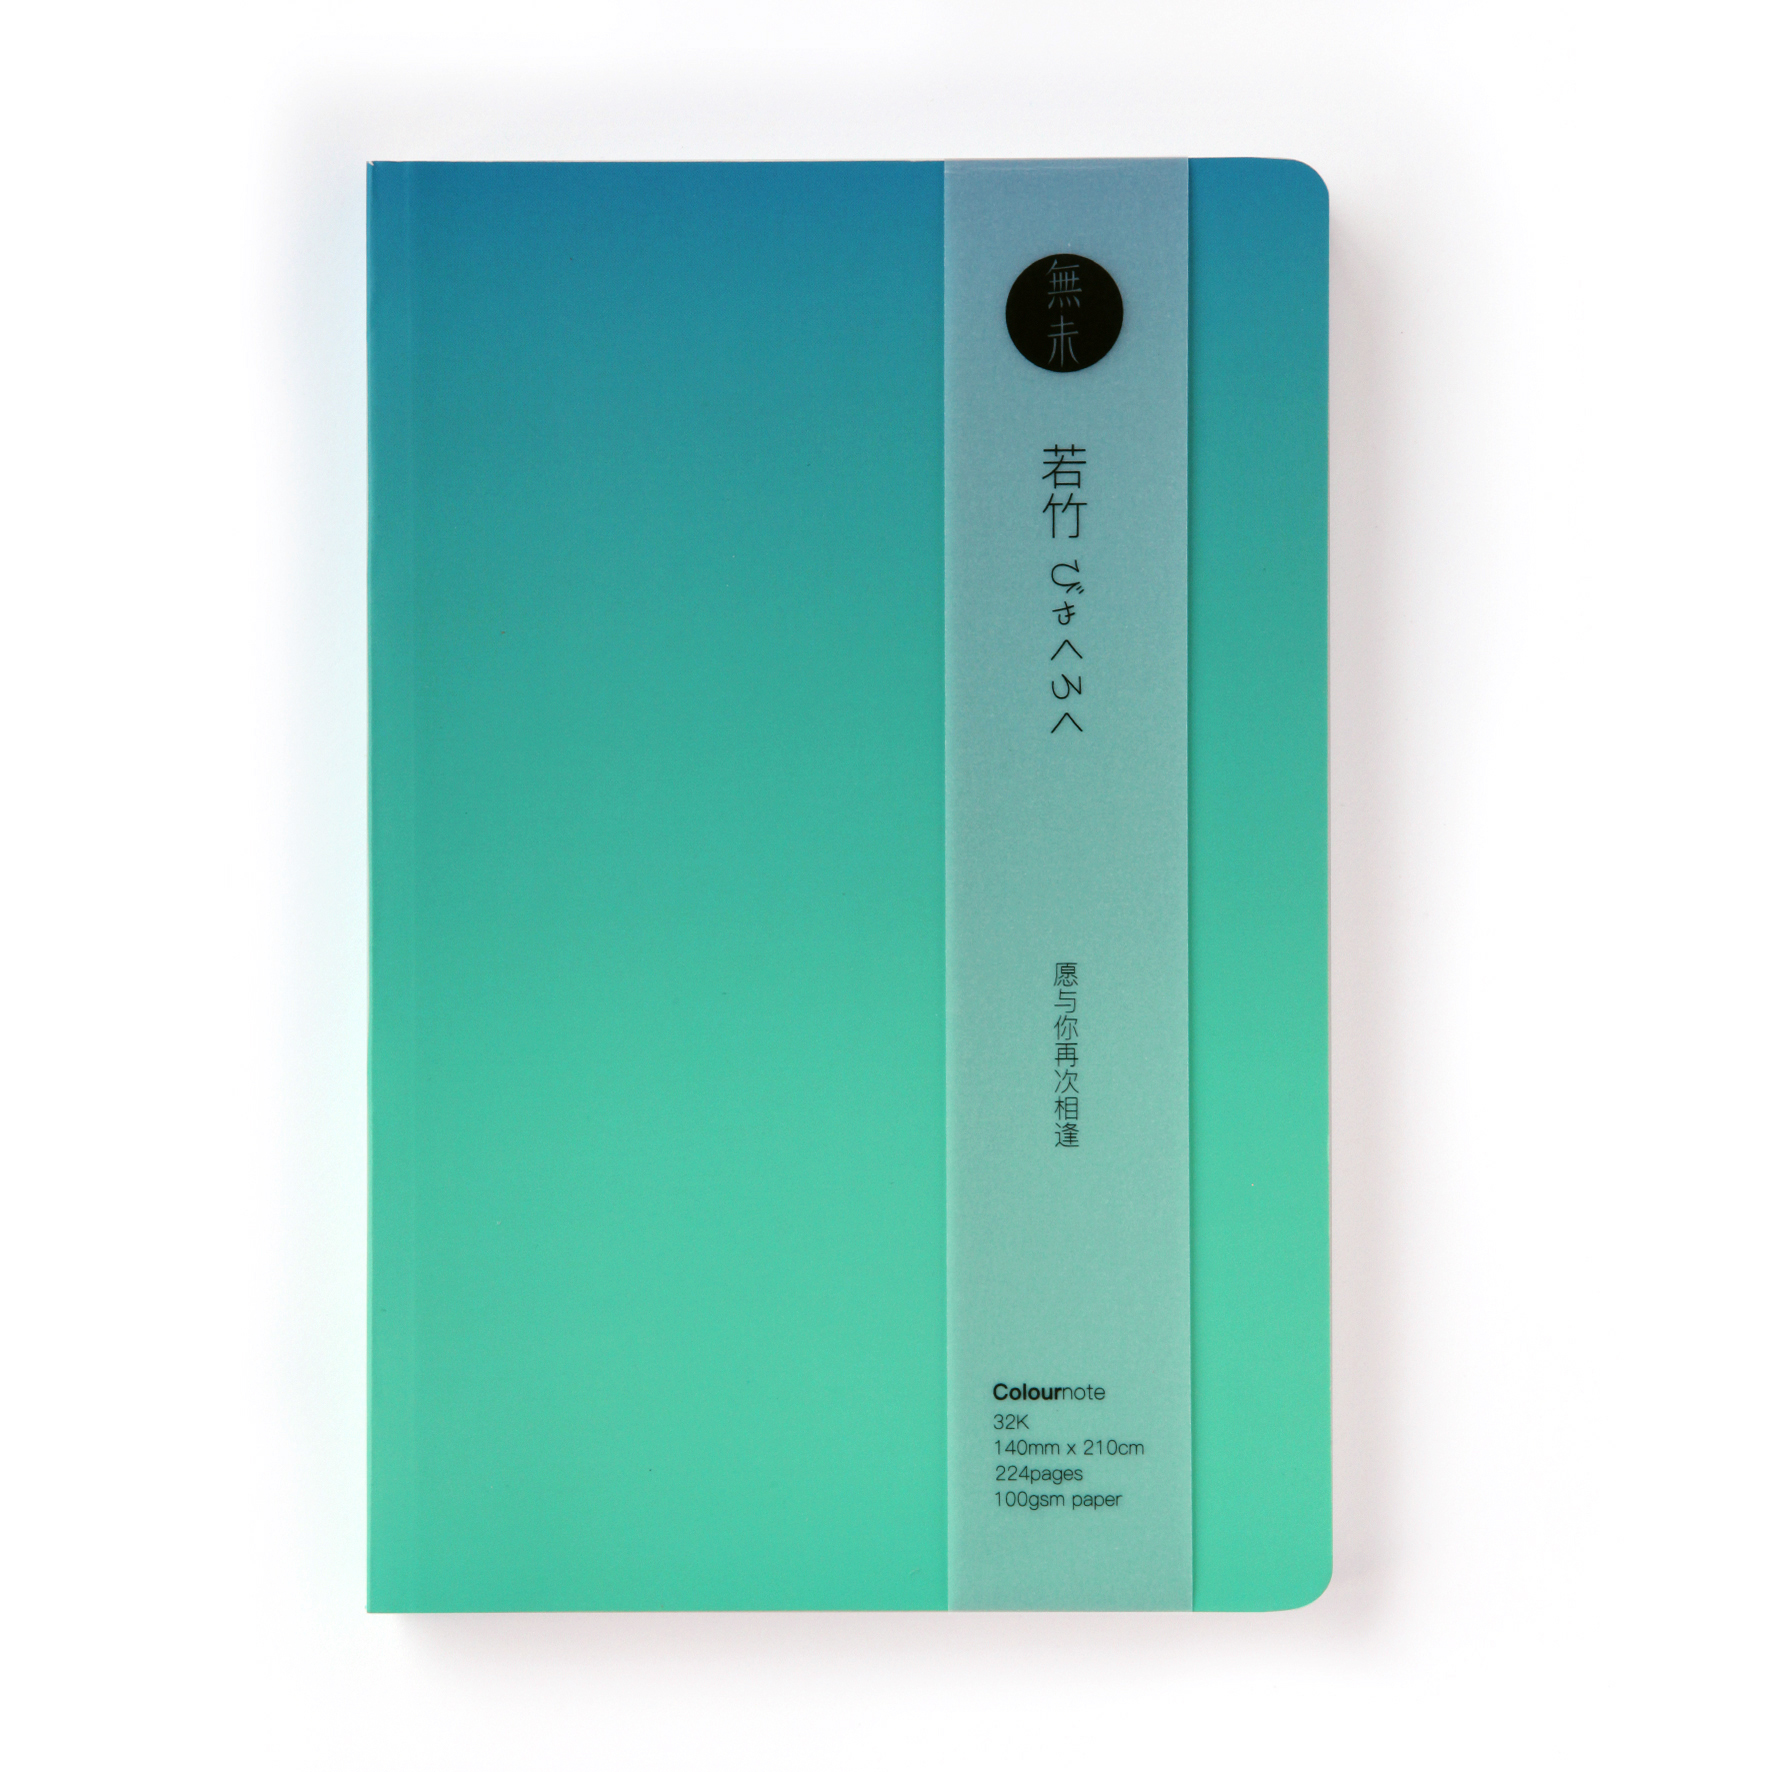 WOOWAY PAPER LAB Colornote Series Bamboo Notebook A5/A6 Designer Notebook Grid Blank Page 1PCS lab series 15ml